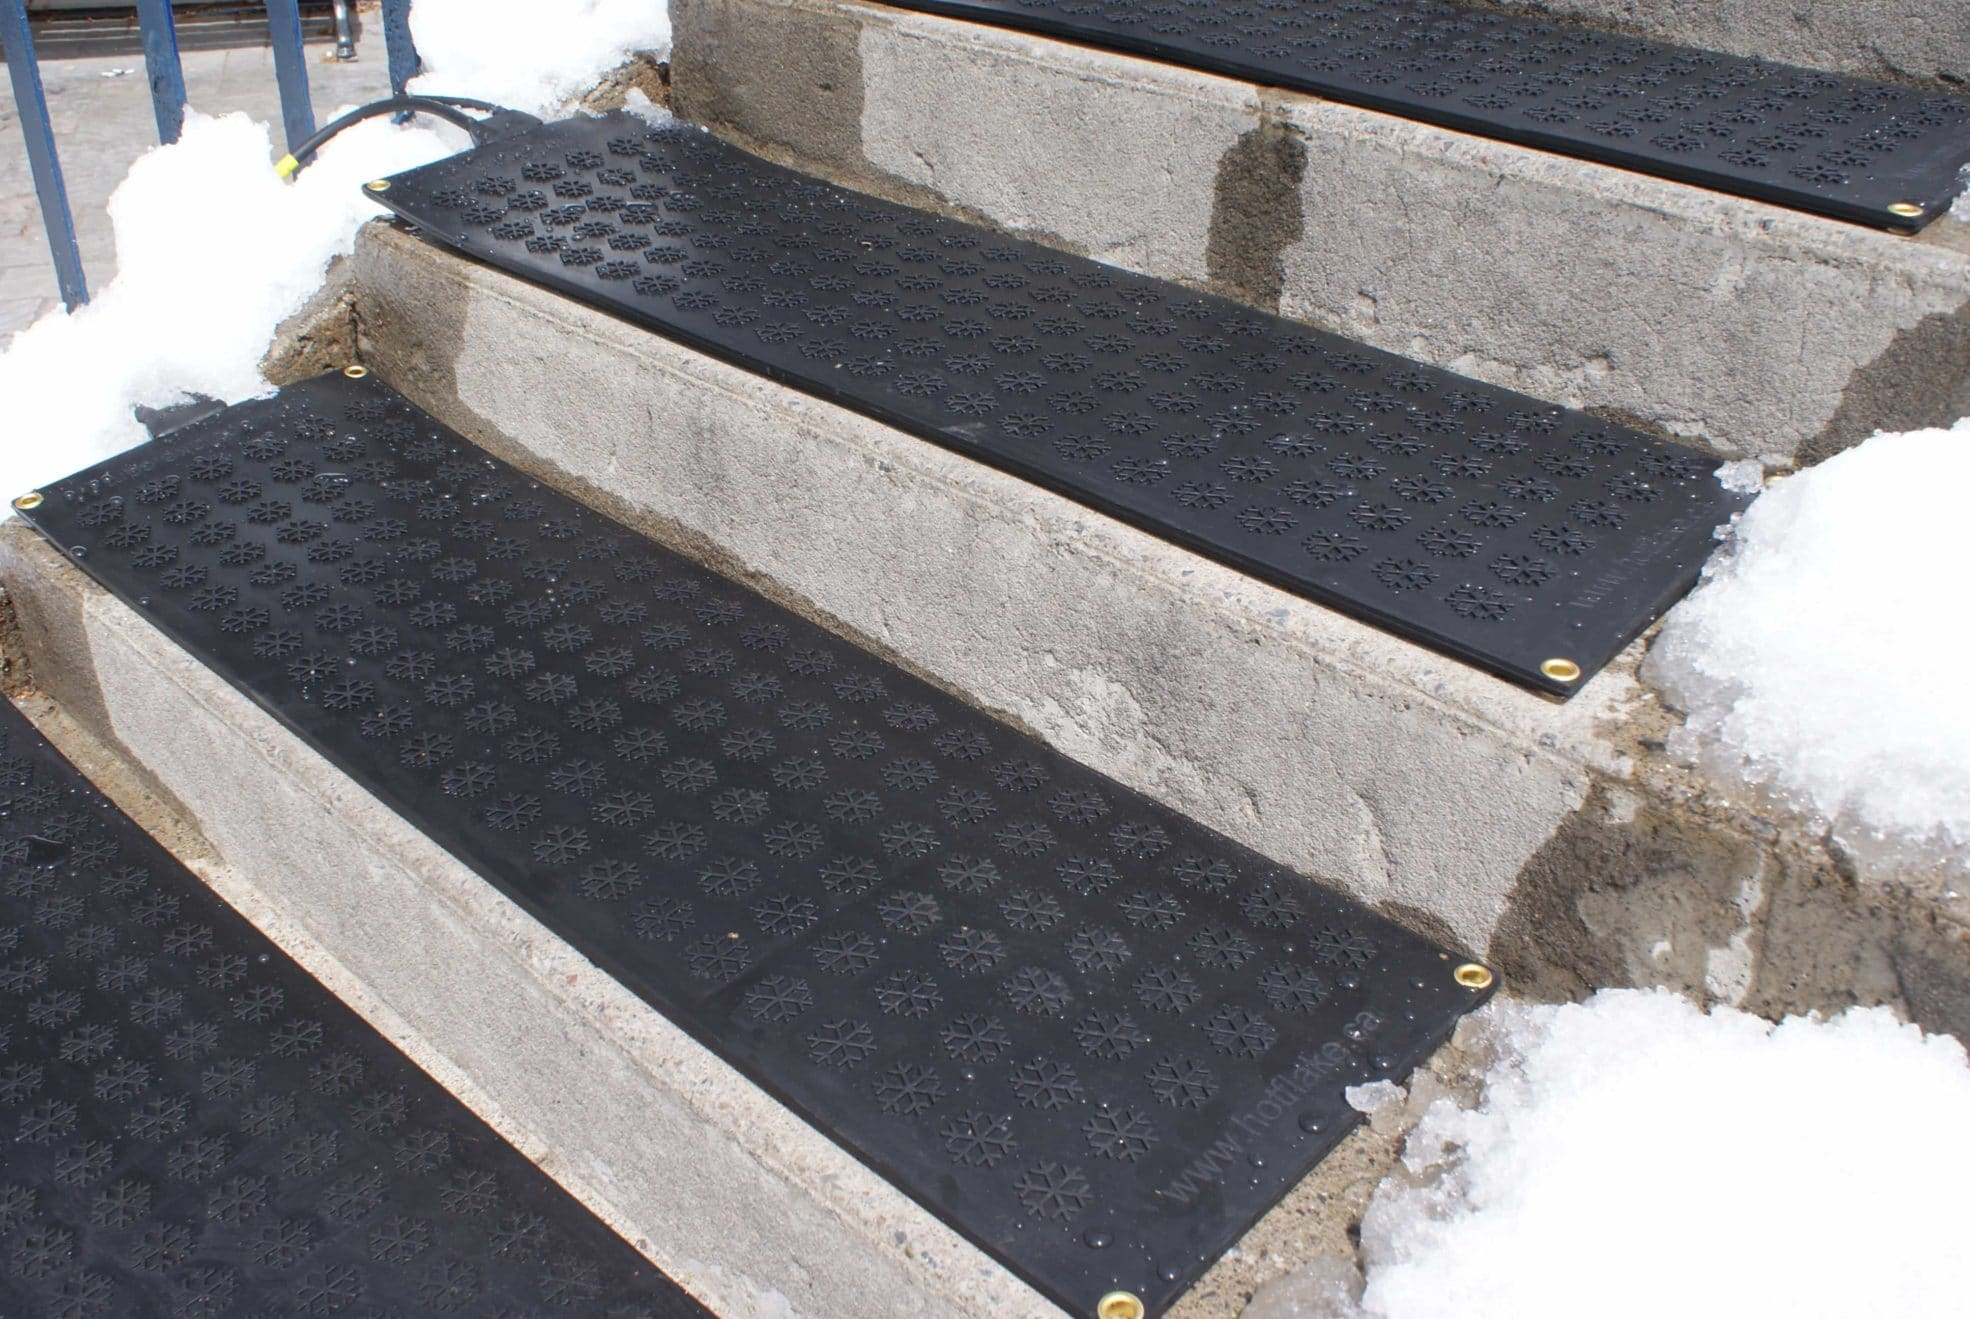 Alternate angle & Close up of HOTflake heating mats on stair case